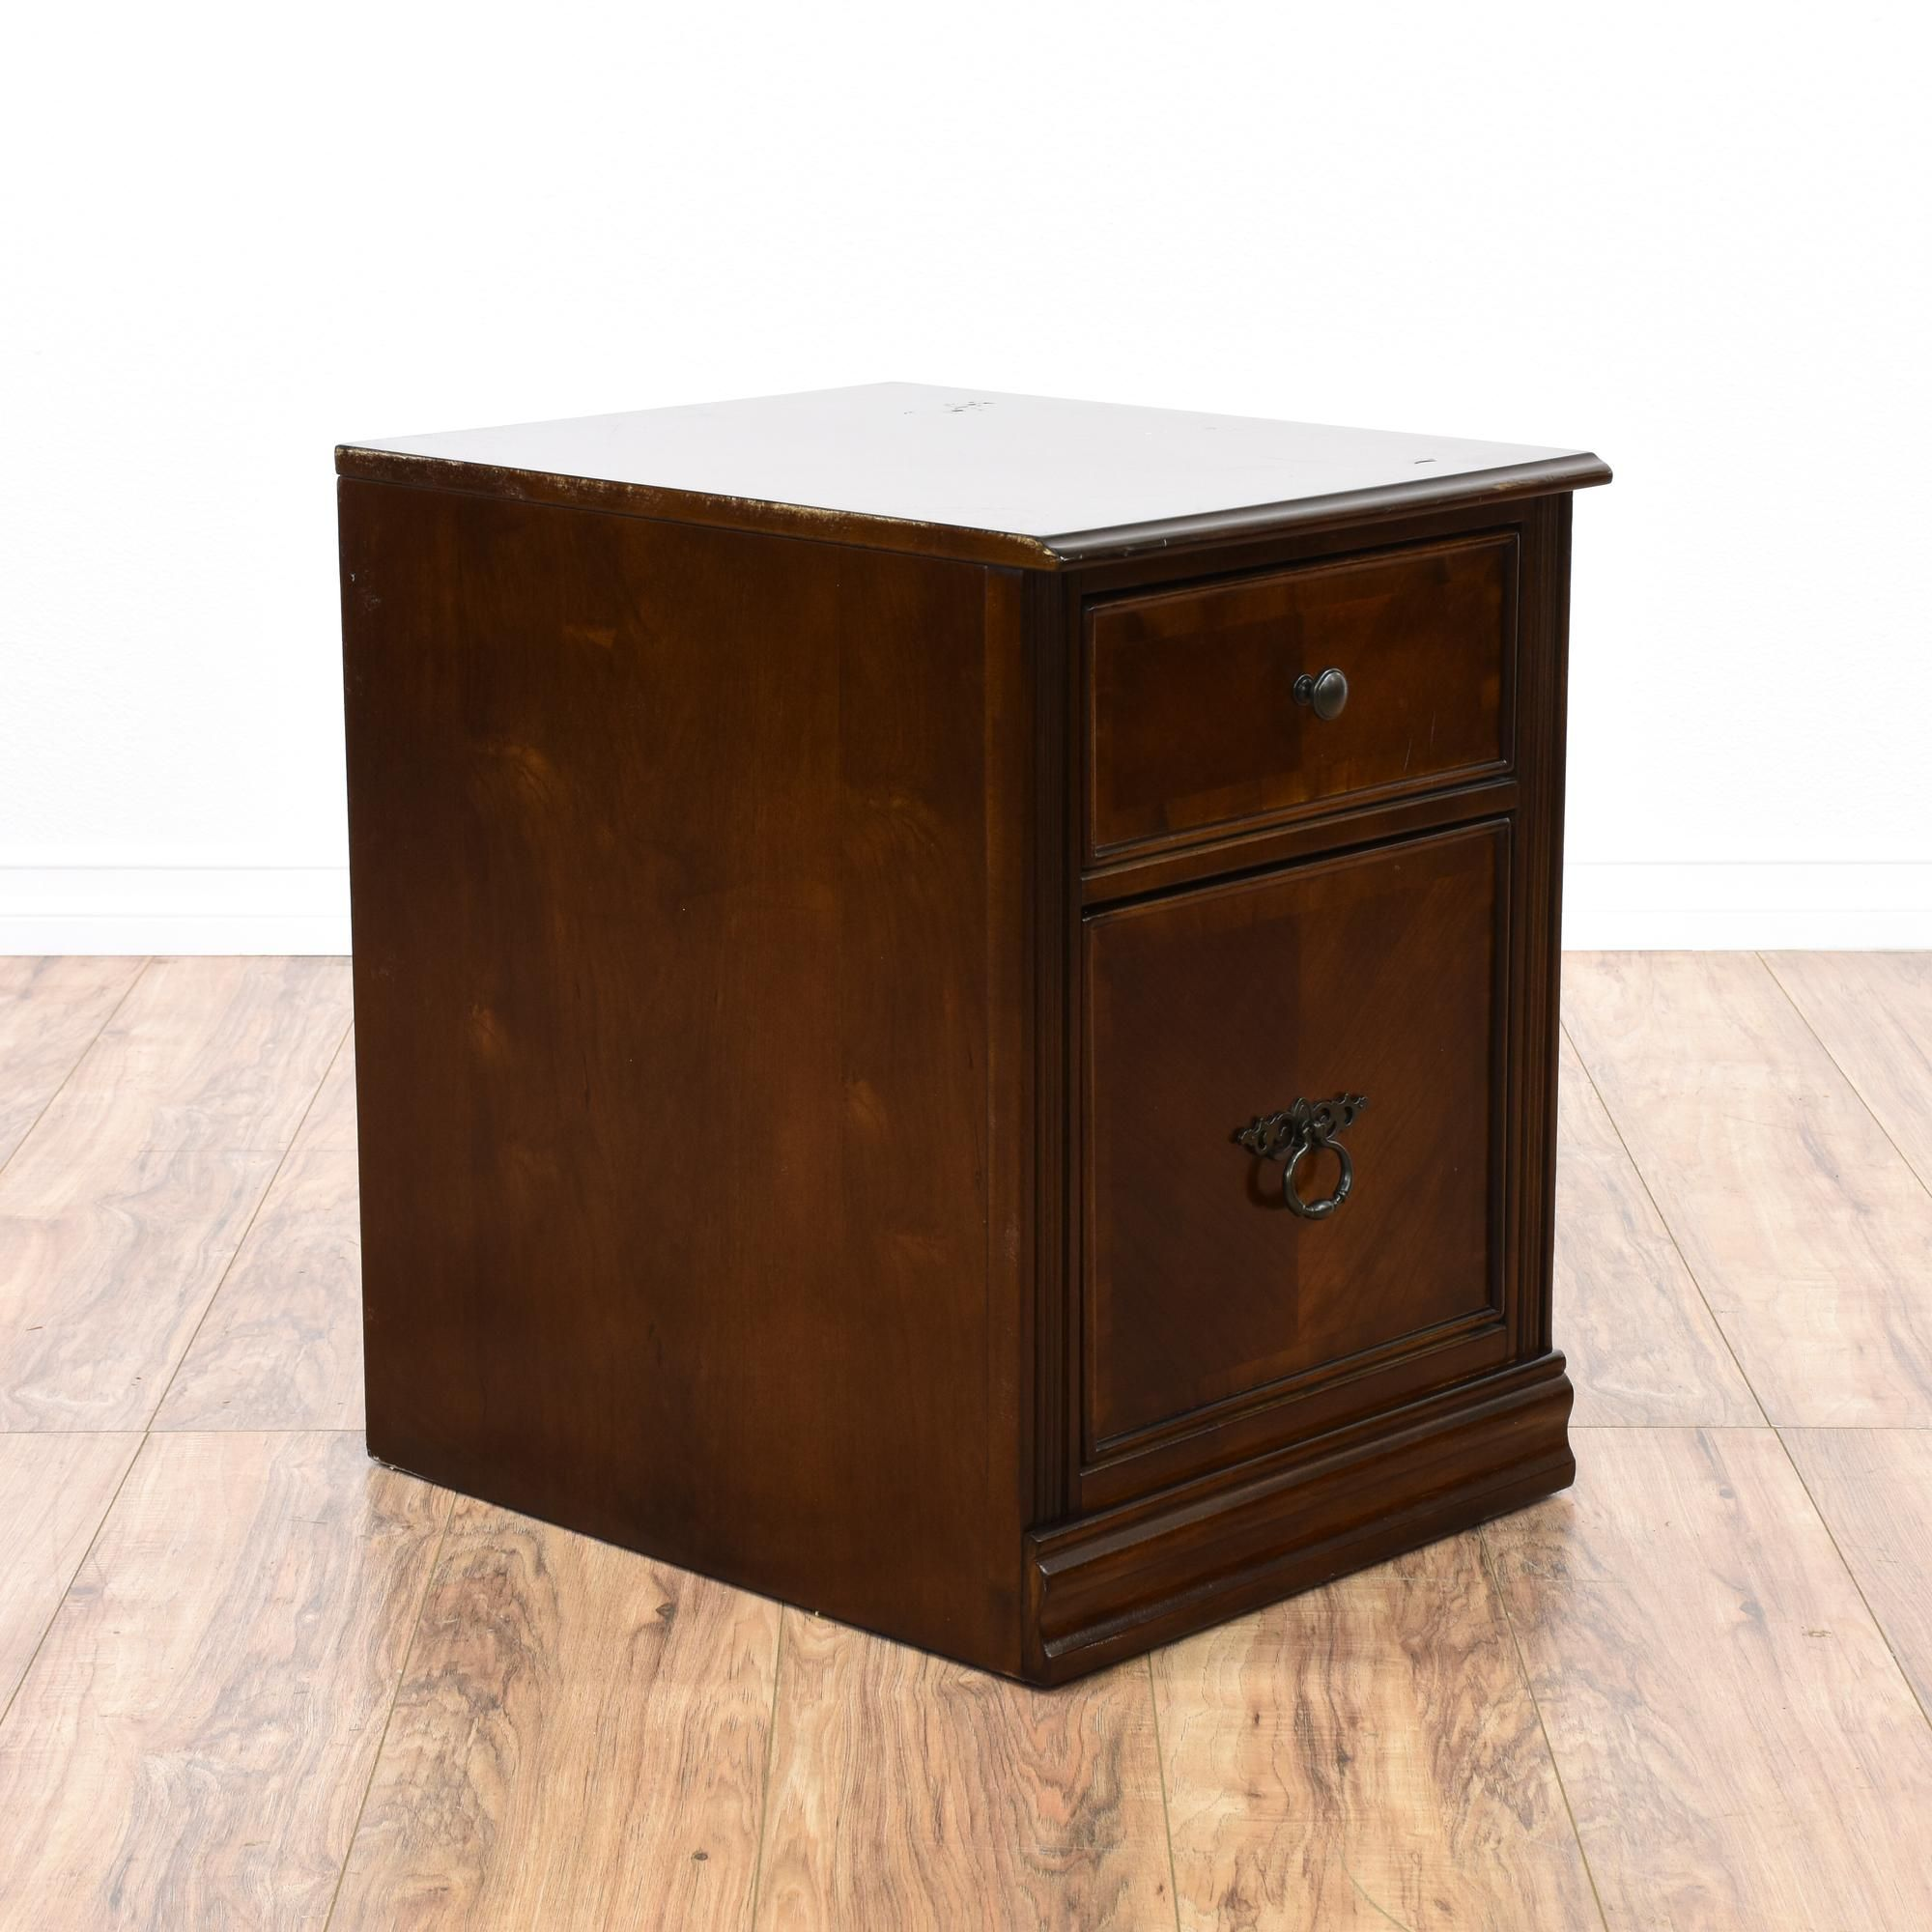 Small Dark Cherry Filing Cabinet   Office workstations, Large ...